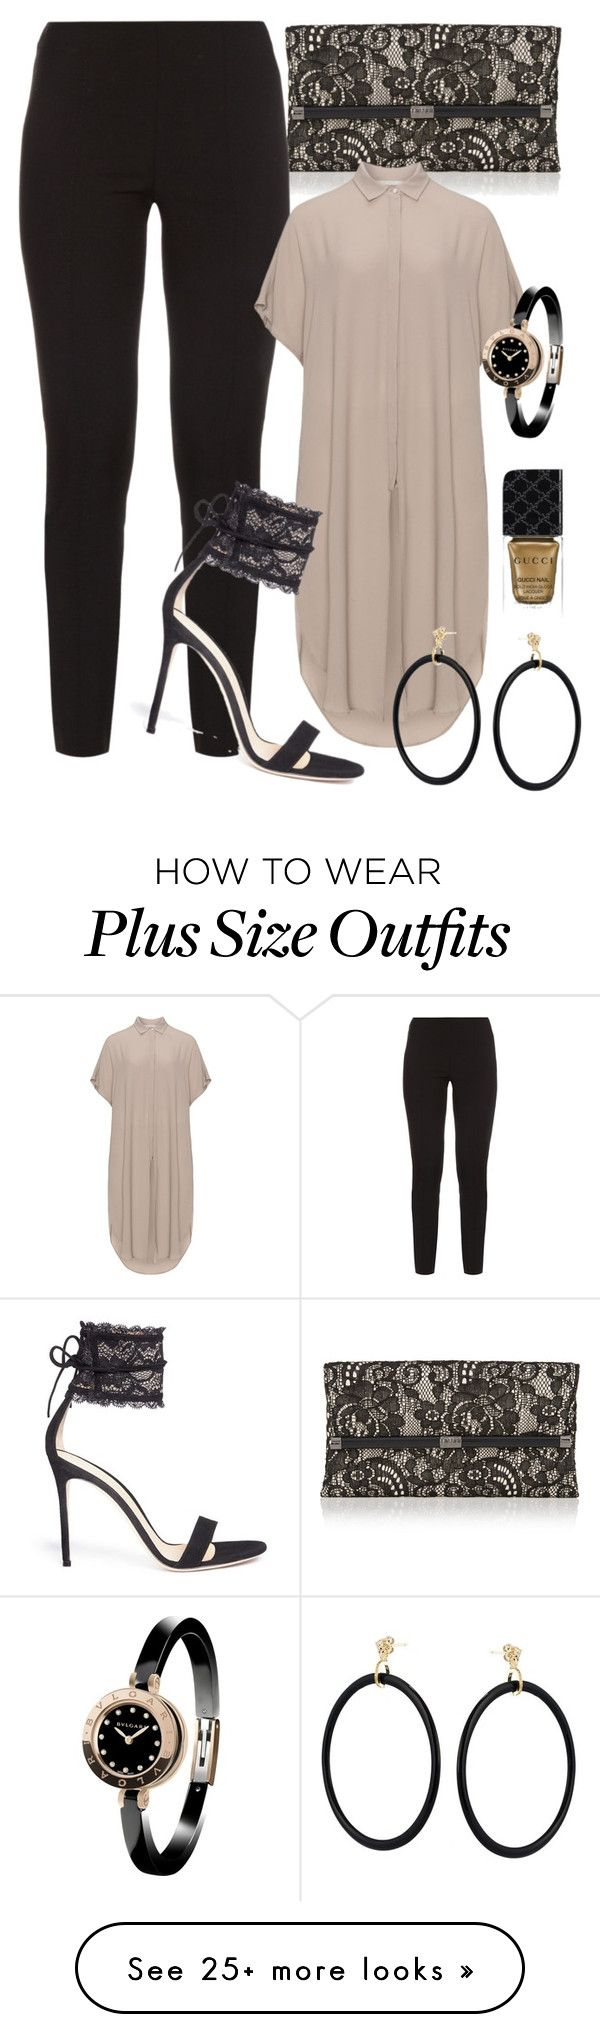 """Bit Lacey"" by perichaze on Polyvore featuring Diane Von Furstenberg, The Row, Mat, Gianvito Rossi, Versace, Bulgari and Gucci"